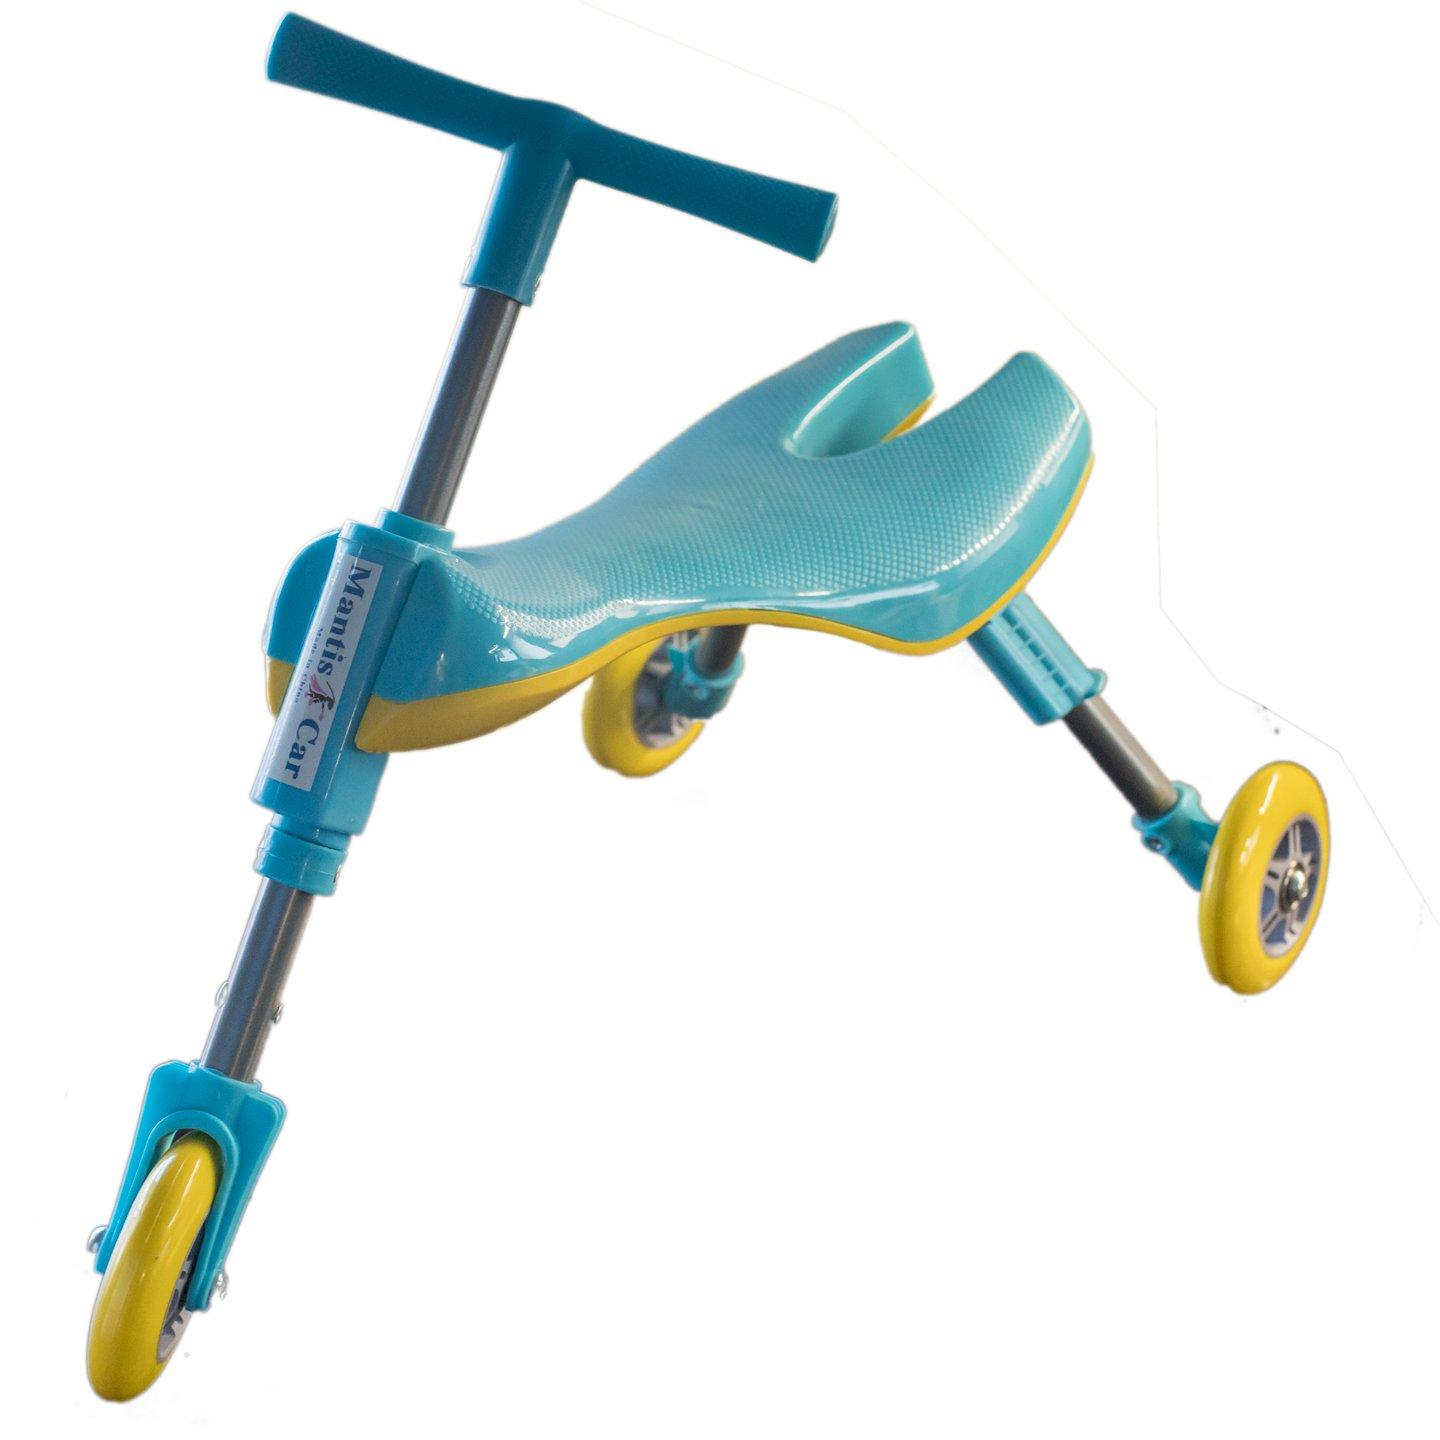 Mr Bigz Foldable Indoor Assembly/Outdoor - Toddlers Glide Tricycle (Blue) - No Assembly Required (Blue) B077PN88CC, アートインテリア額縁のゆうびどう:c75bea47 --- number-directory.top